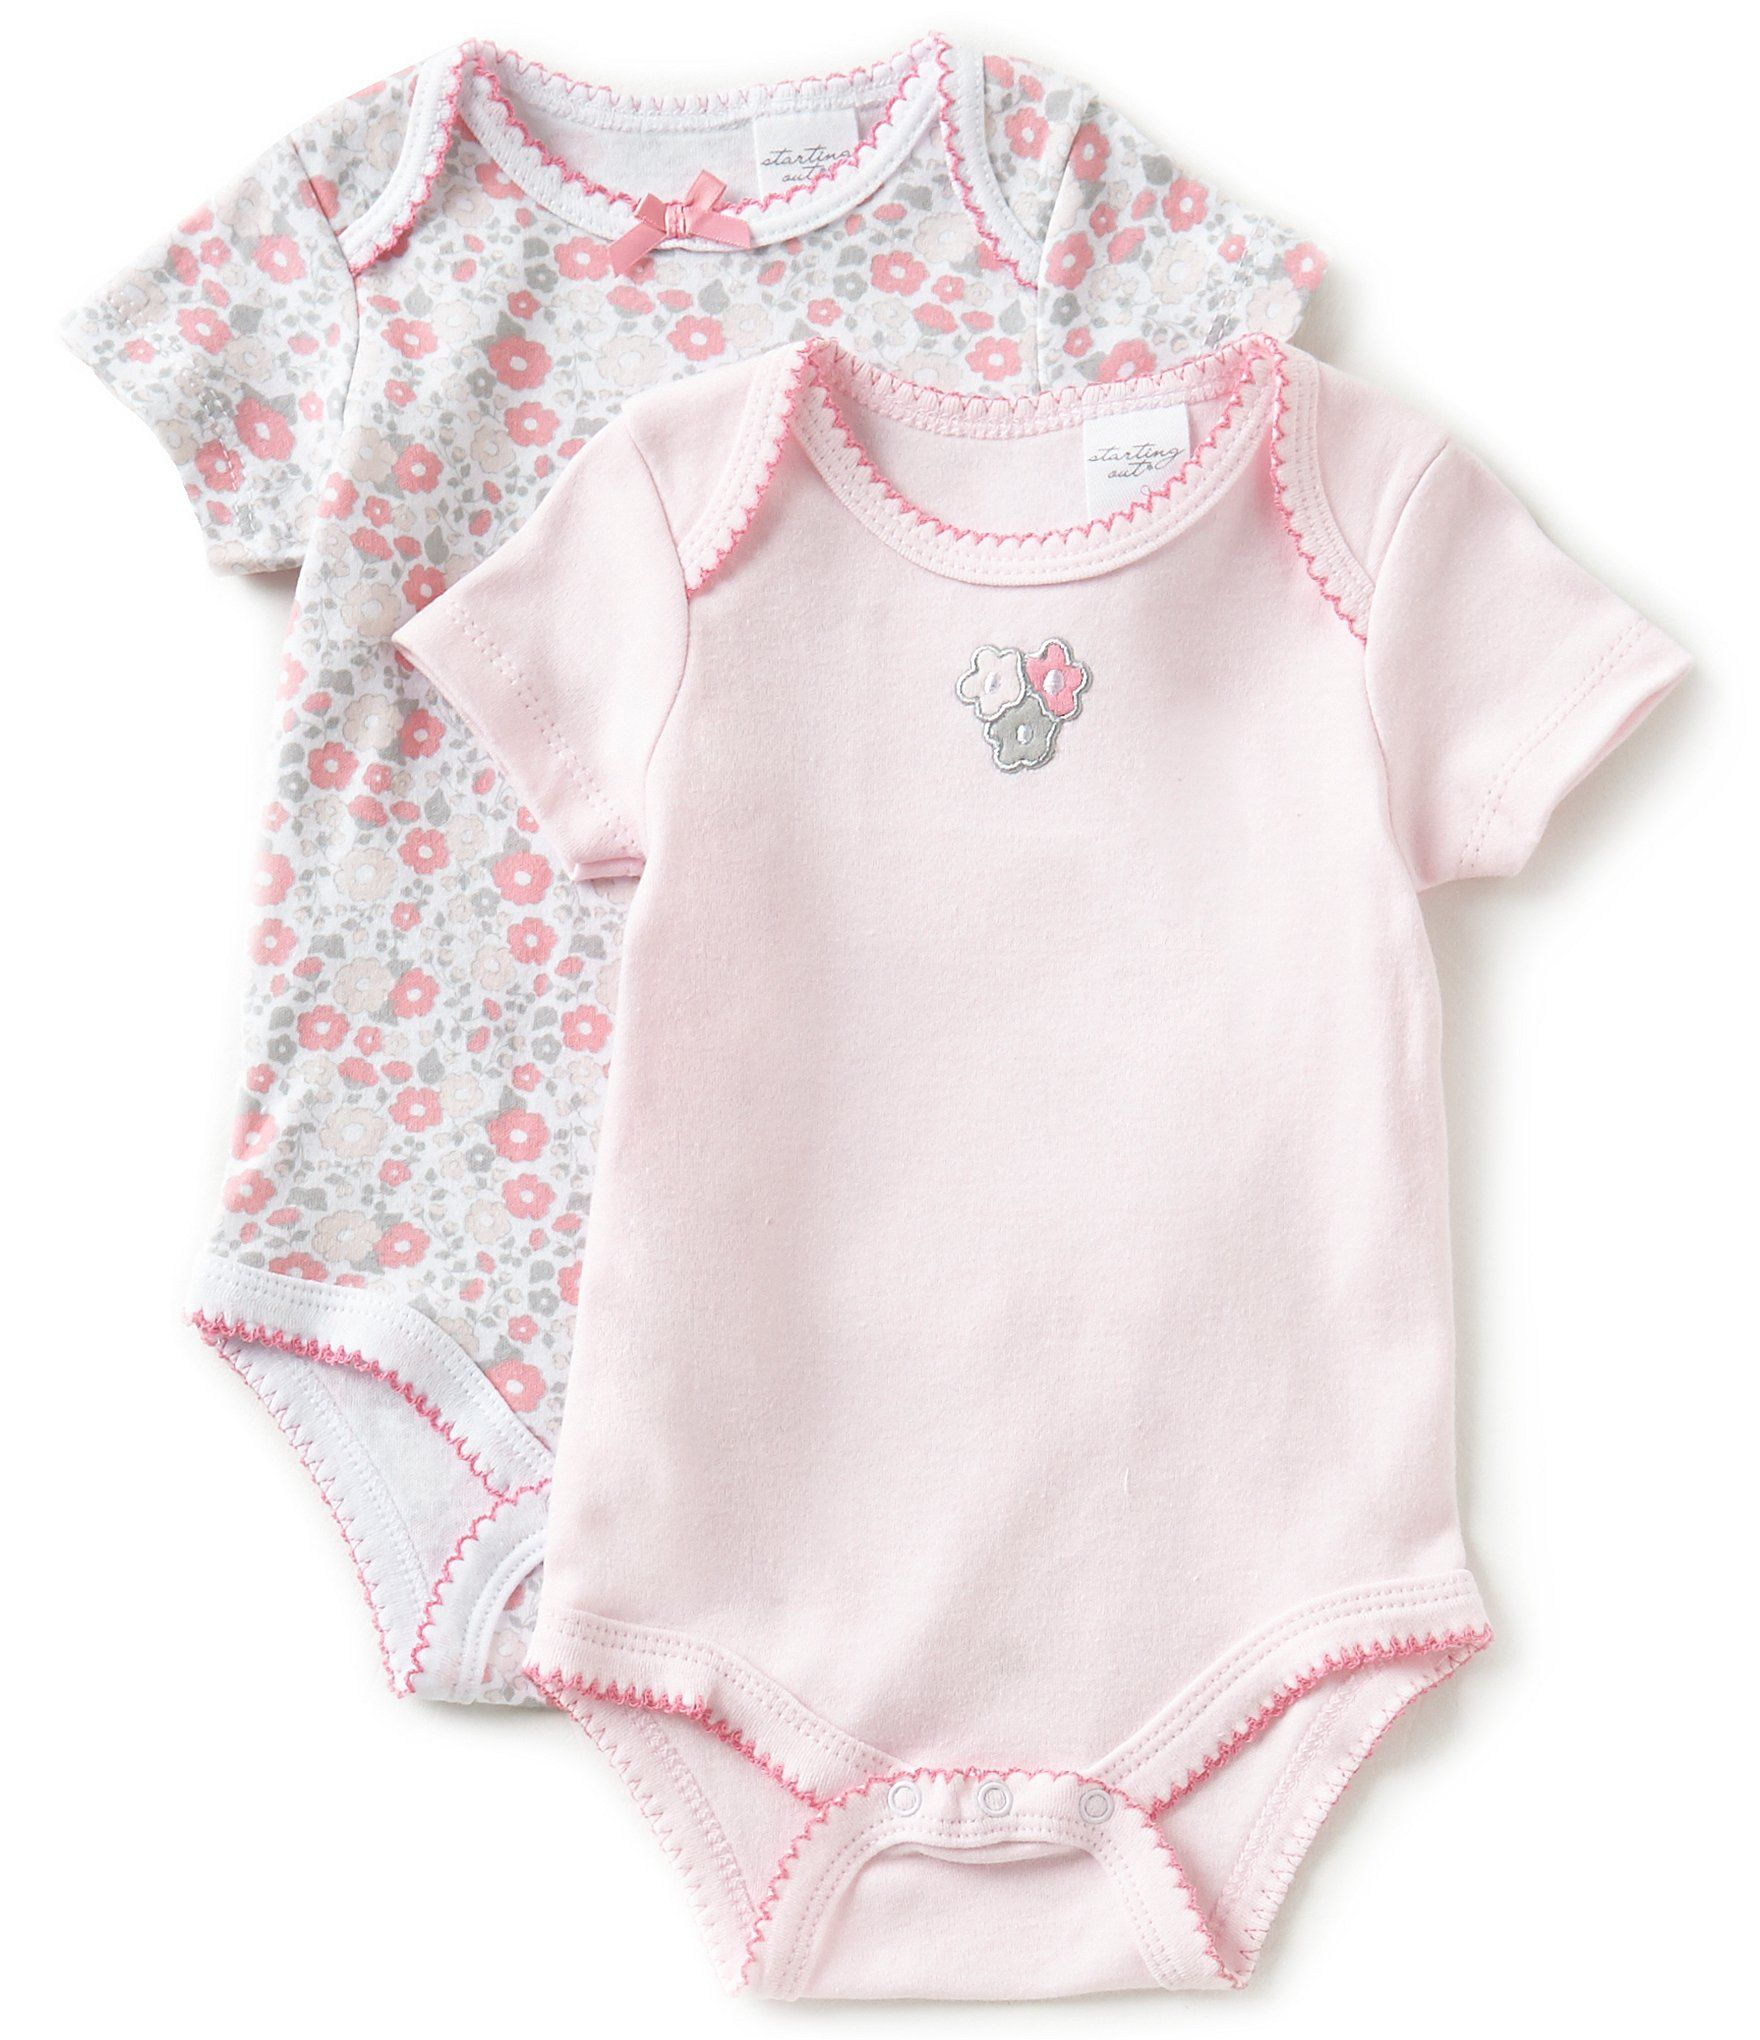 Shop for Starting Out Baby Girls Newborn 6 Months Floral Short